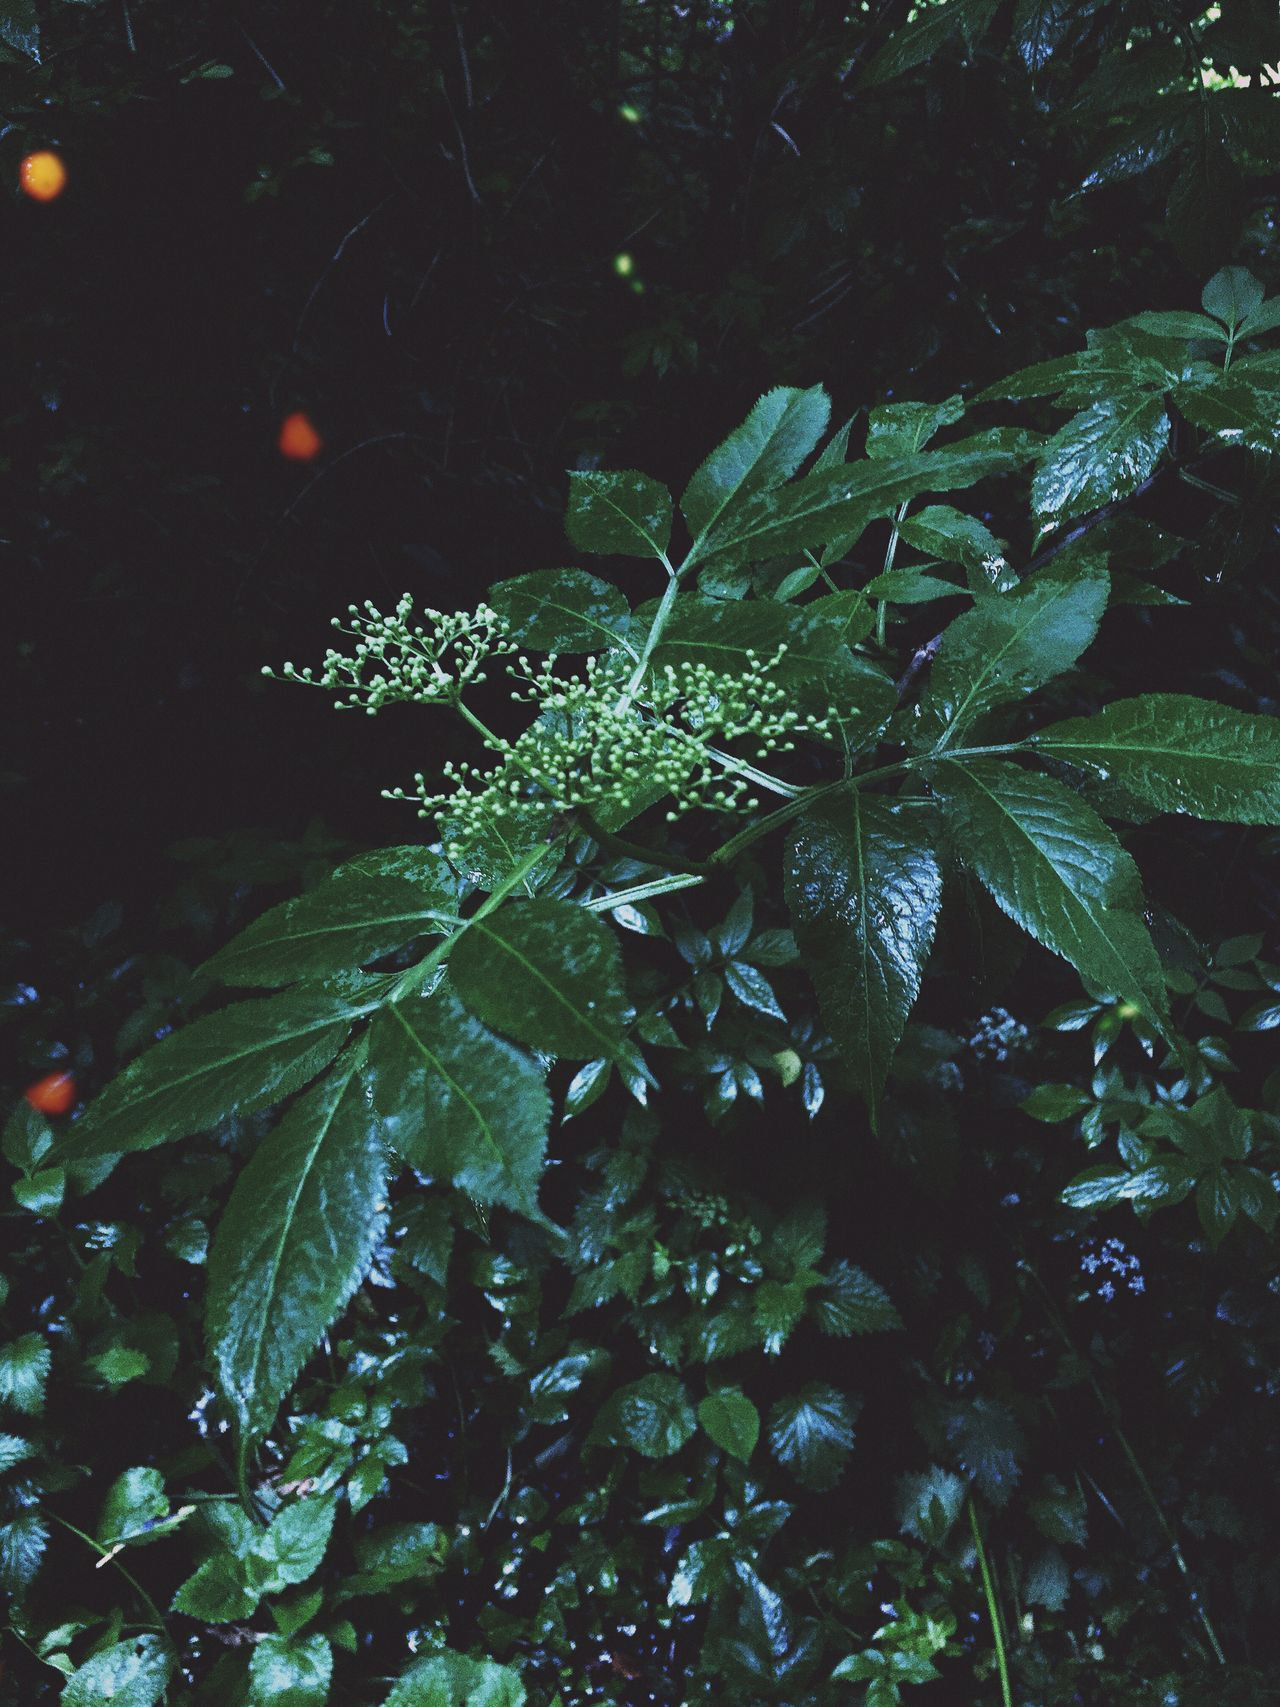 Firefly // iPhone 6s // Leaf Growth Water Nature Plant Drop Green Color No People Beauty In Nature Outdoors Close-up Freshness Fragility Tree Nature Firefly Lighting IPhoneography Iphone6s This Week On Eyeem EyeEm Best Shots EyeEm Nature Lover ShotoniPhone6s Water Droplets Summer The Great Outdoors - 2017 EyeEm Awards